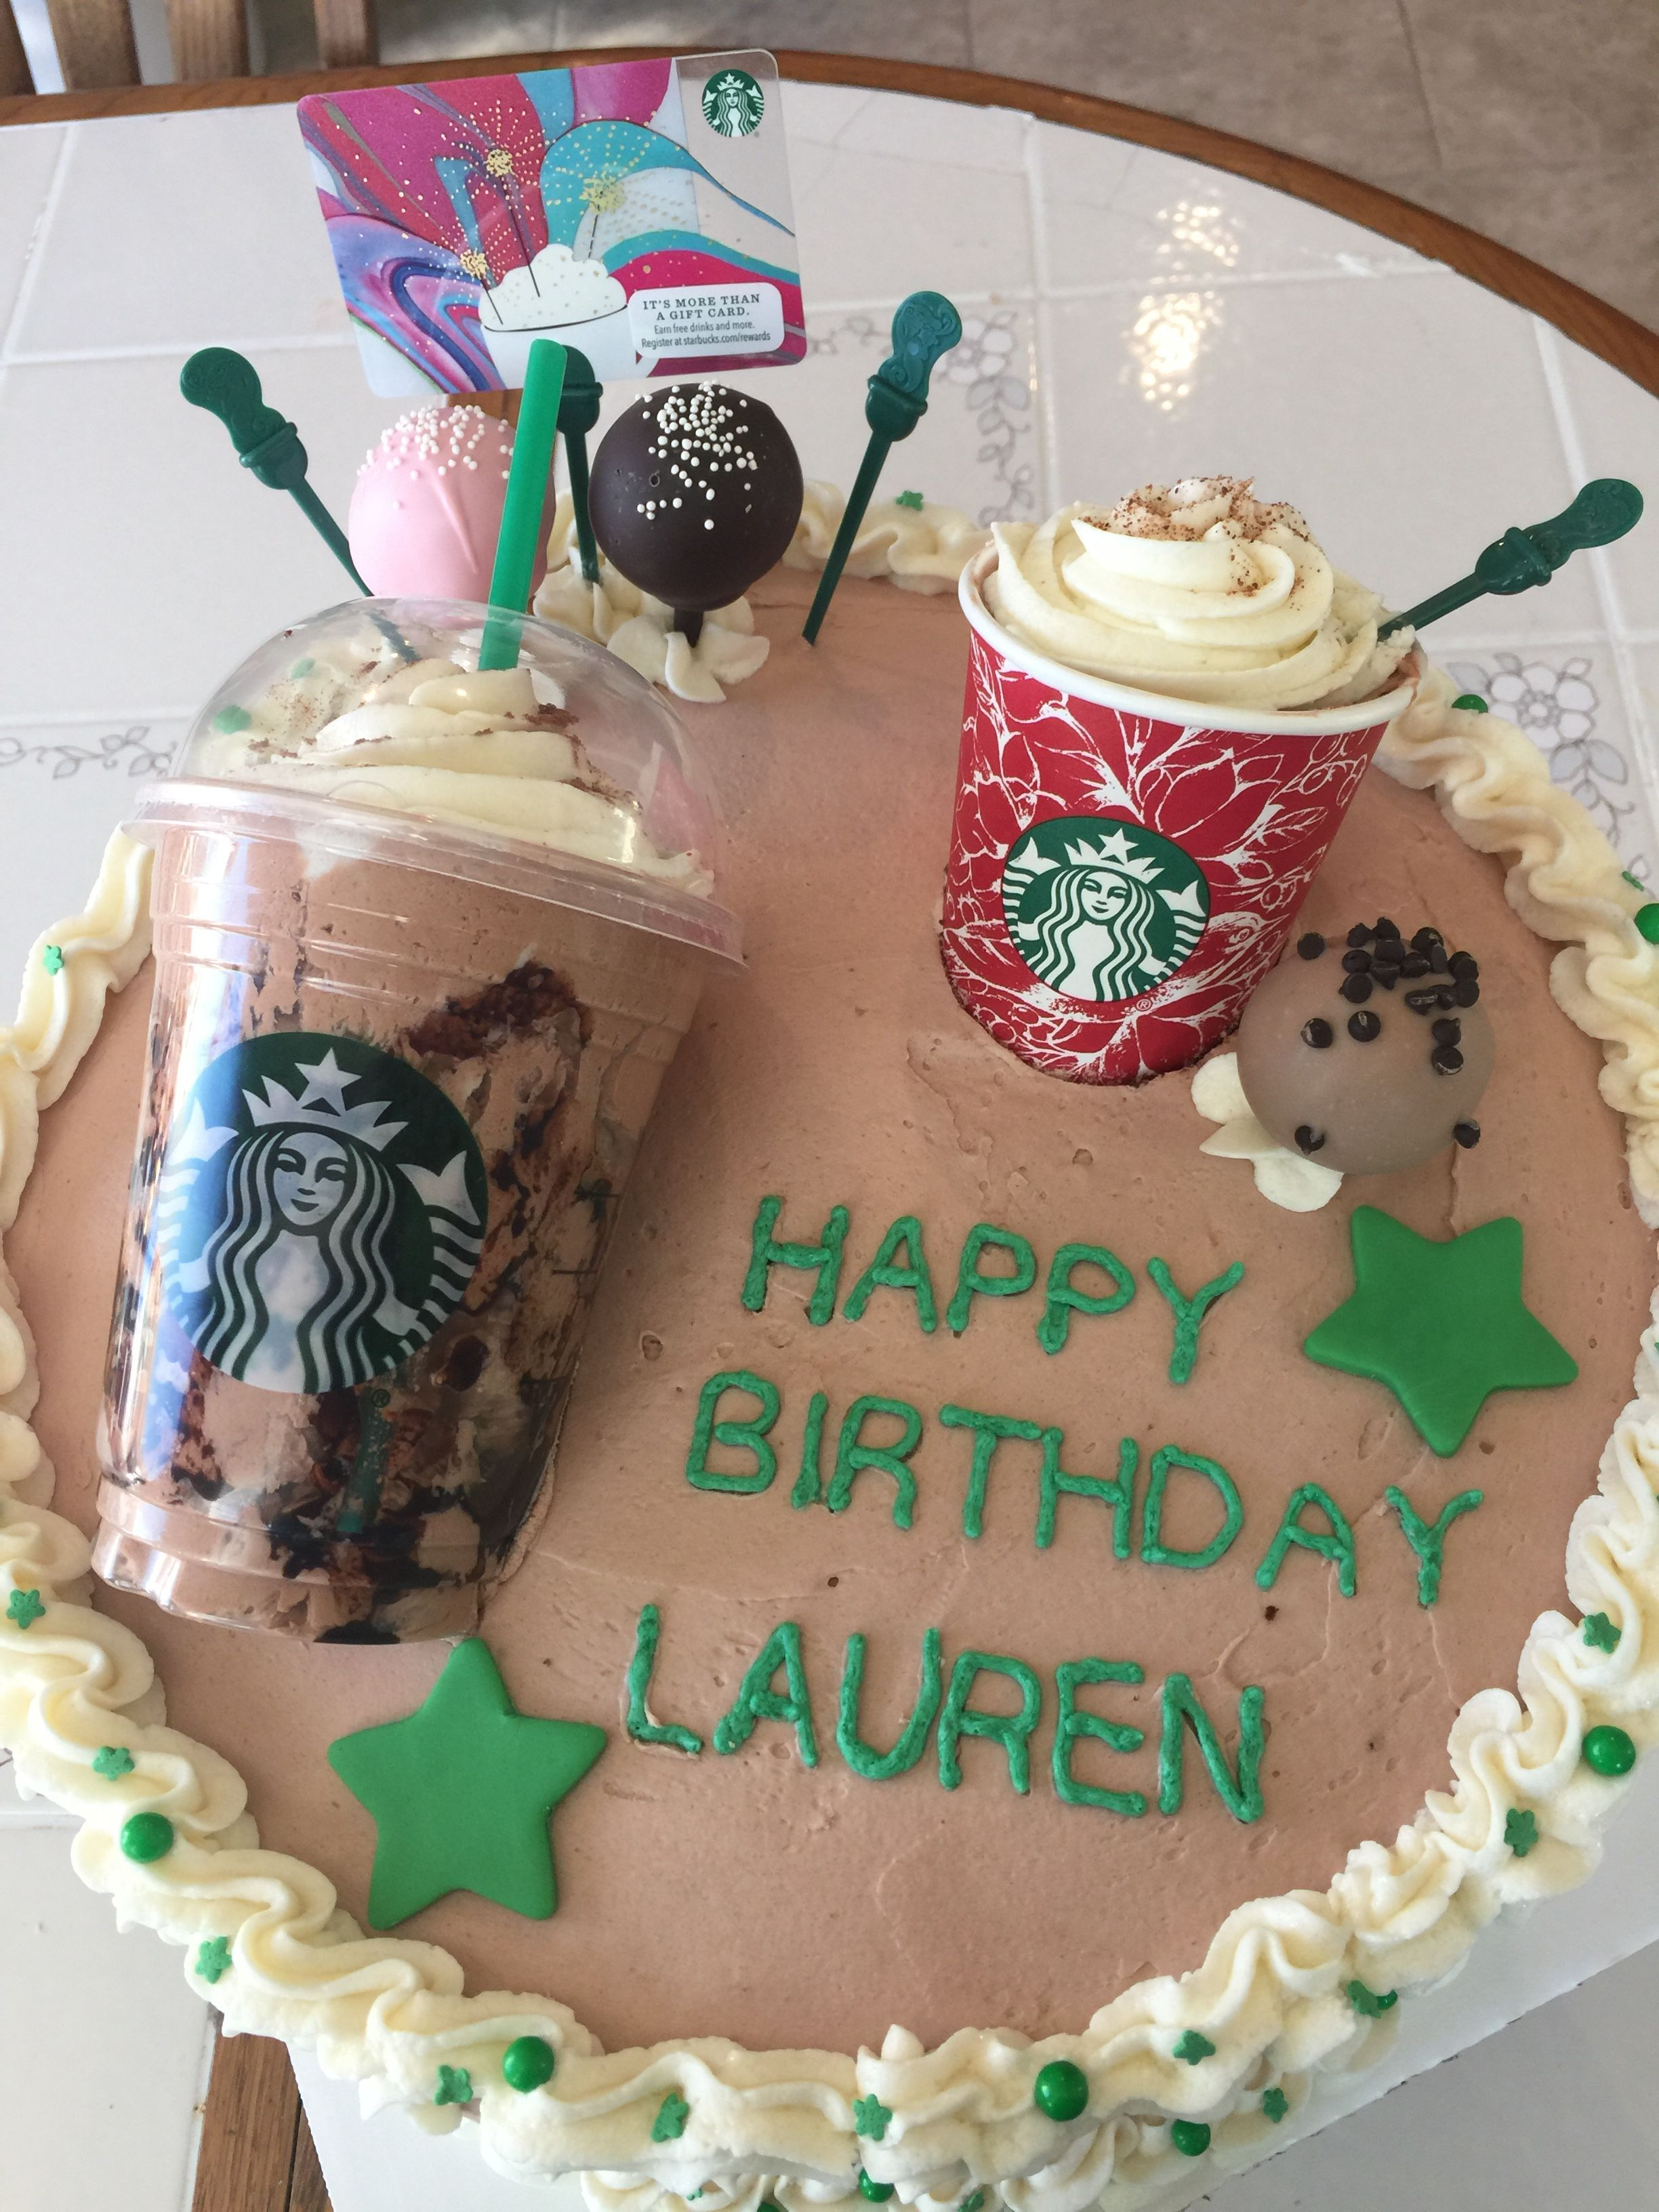 Starbucks Cake By Gymnasticsgirl101 On Starbucks Starbucks